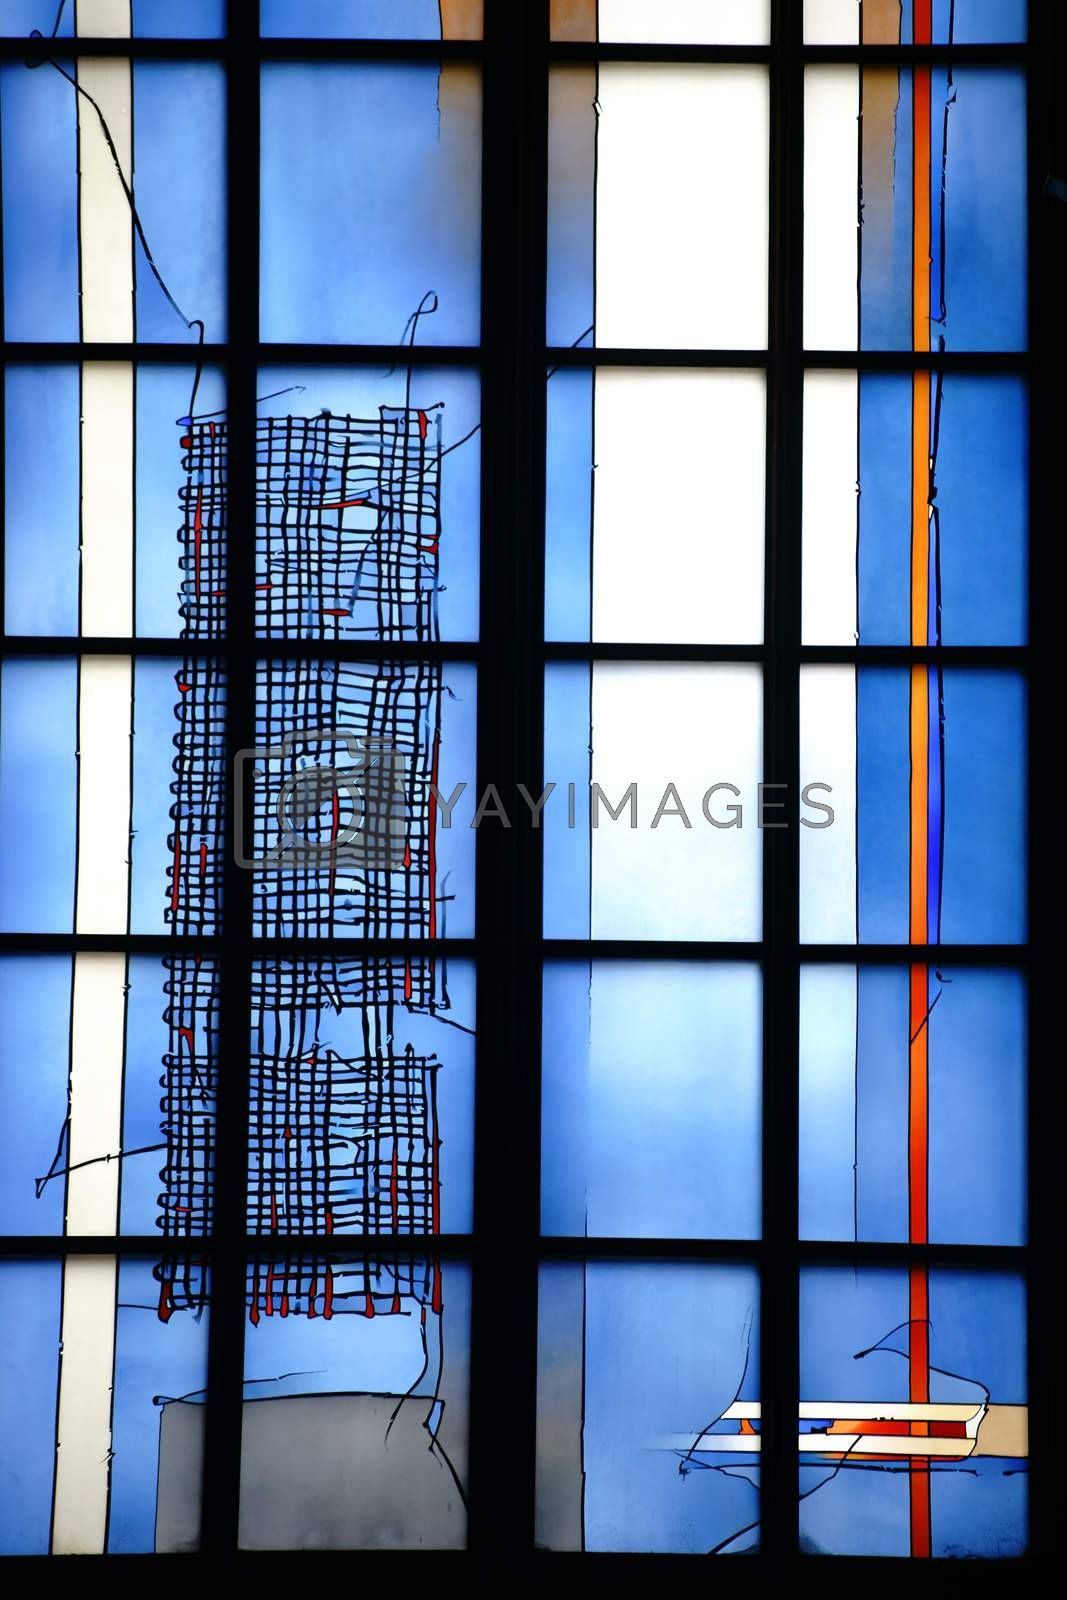 Mainz, Germany - September 04, 2015: The blue painted new and modern chapel Window of the sacraments chapel and the cross altar in the Mainz Cathedral on September 04, 2015 in Mainz.